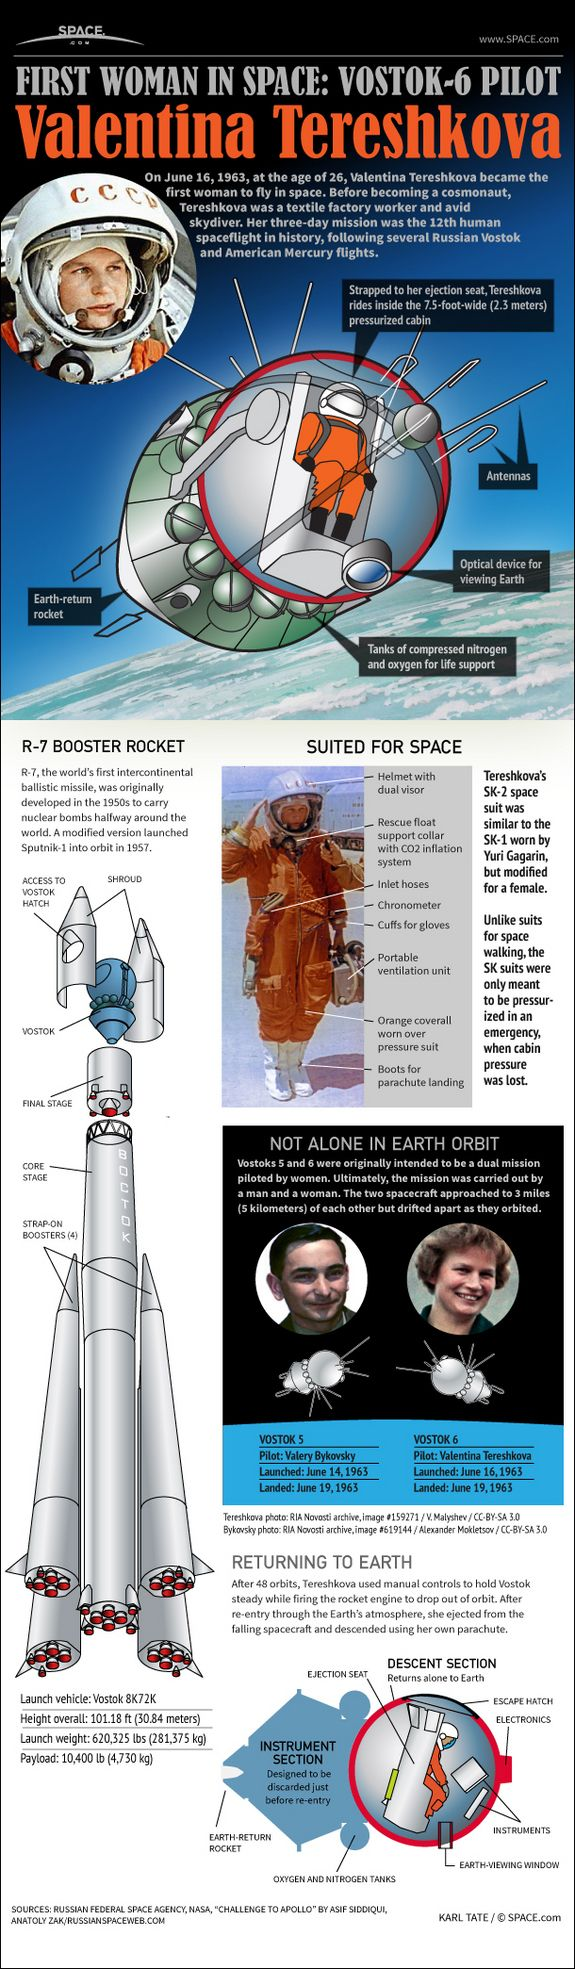 How Valentina Tereshkova's 1963 Vostok-6 Flight Worked (Infographic)  by Karl Tate, SPACE.com Infographics Artist